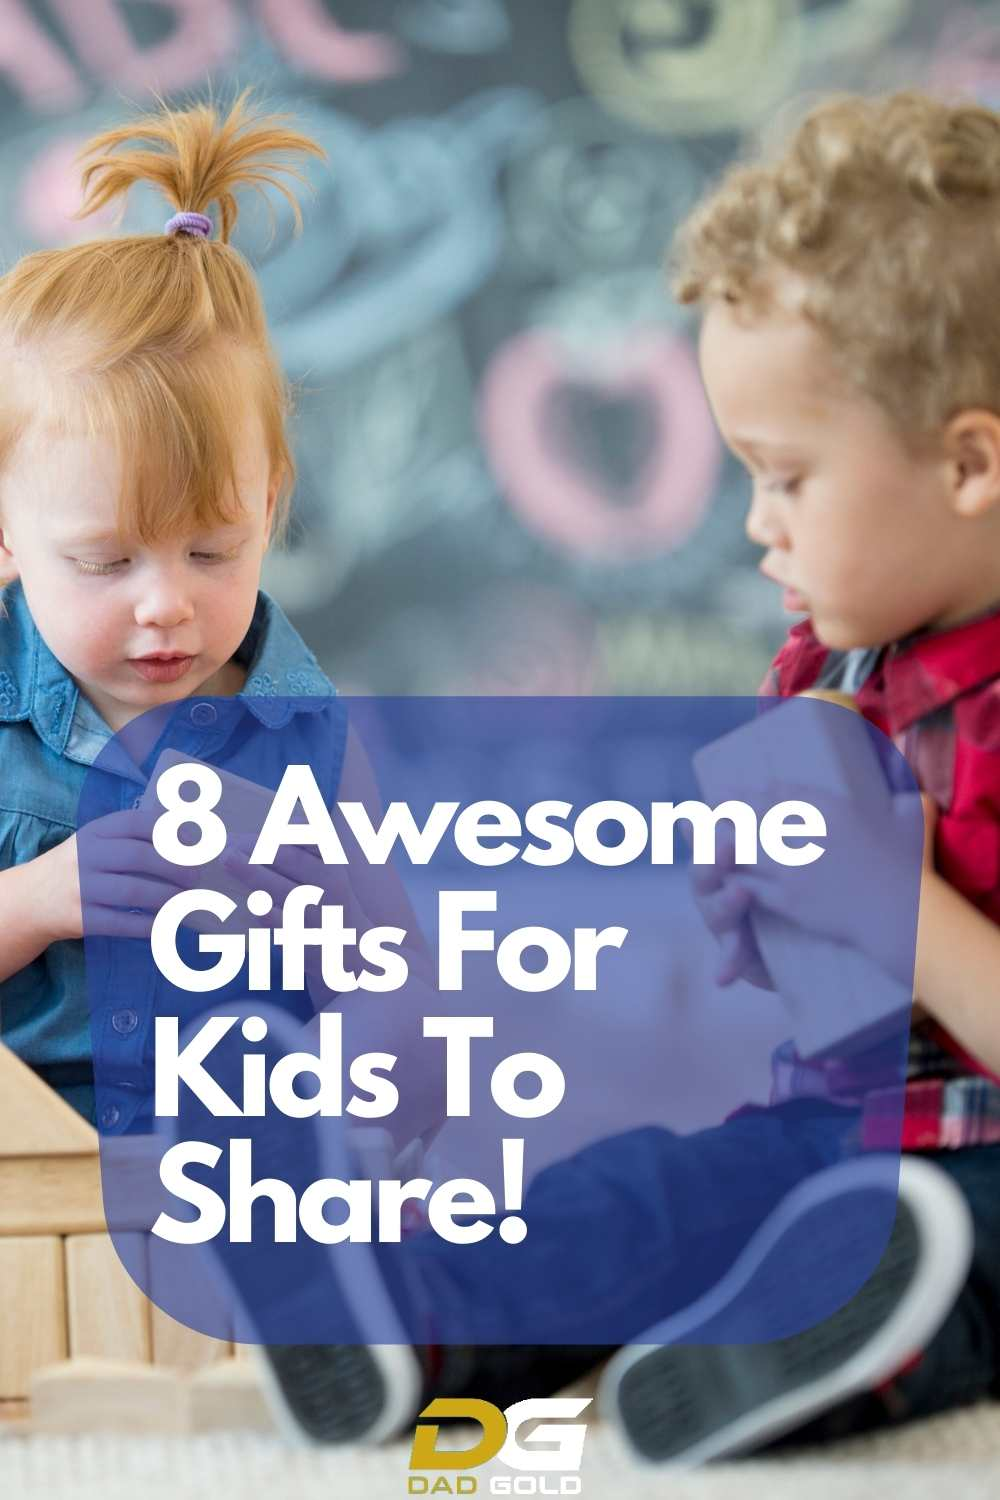 8 Awesome Gifts For Kids To Share